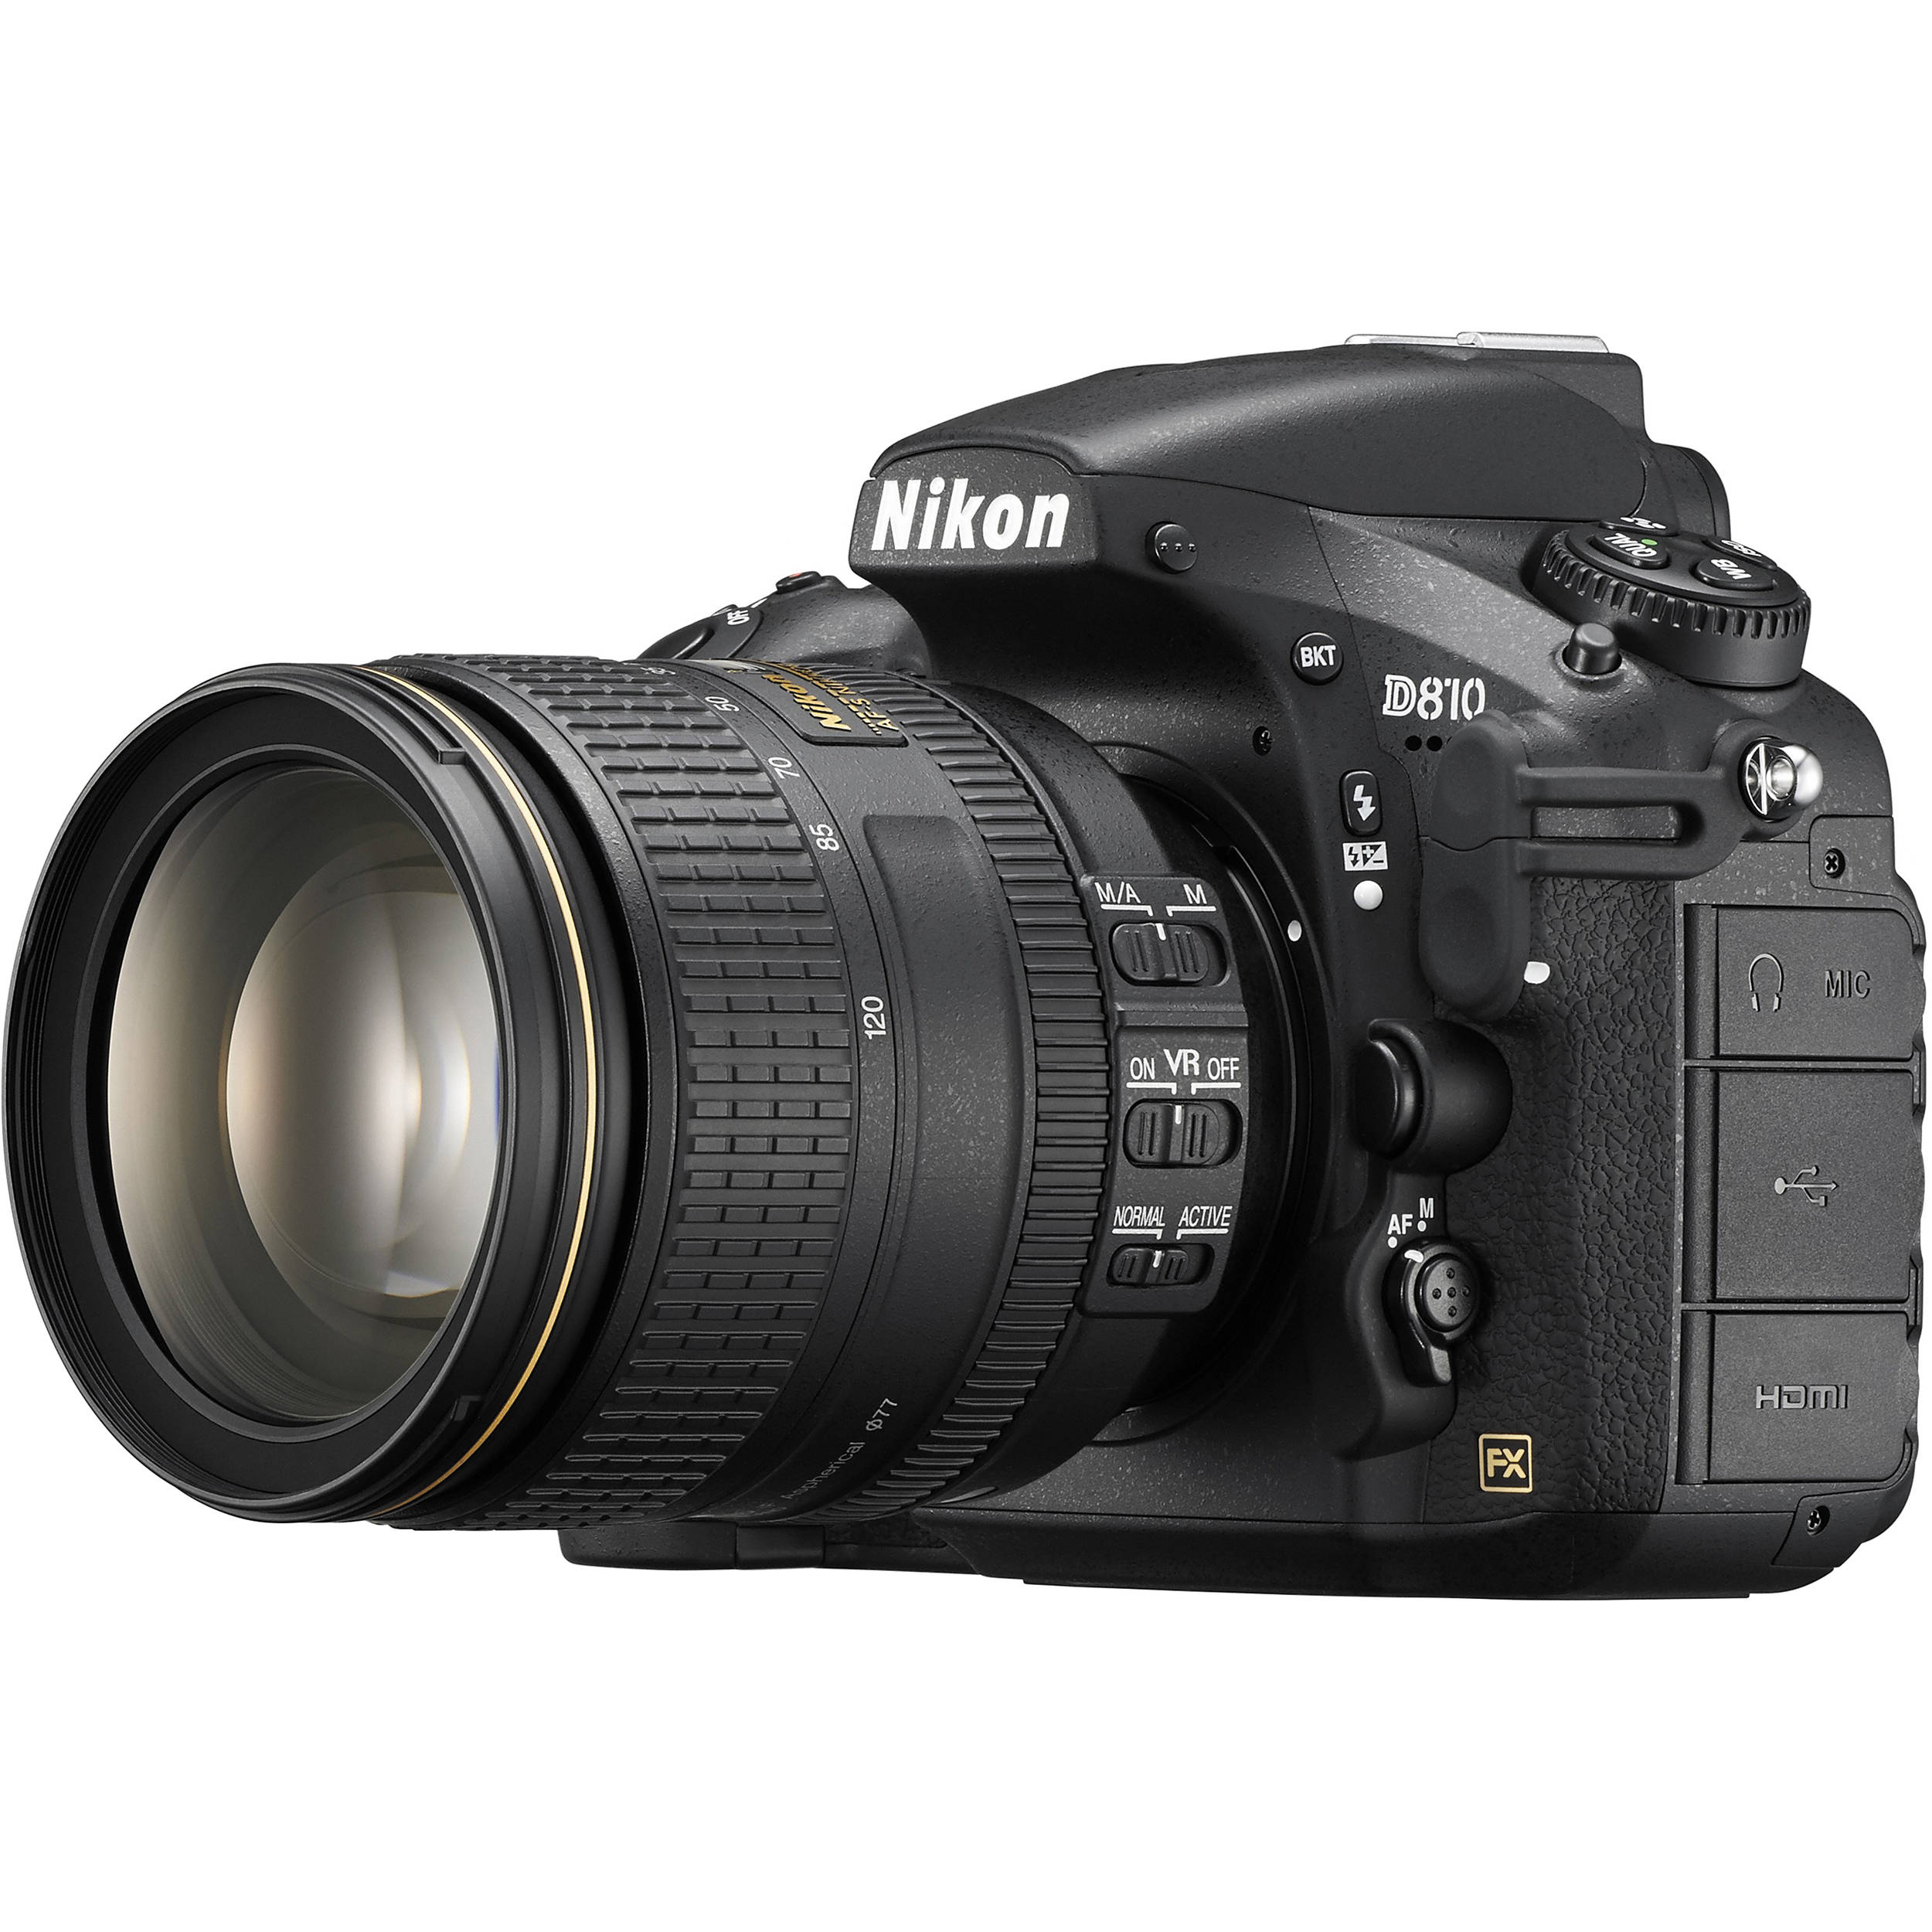 Nikon D810 DSLR Camera with 24-120mm Lens 1556 B&H Photo Video